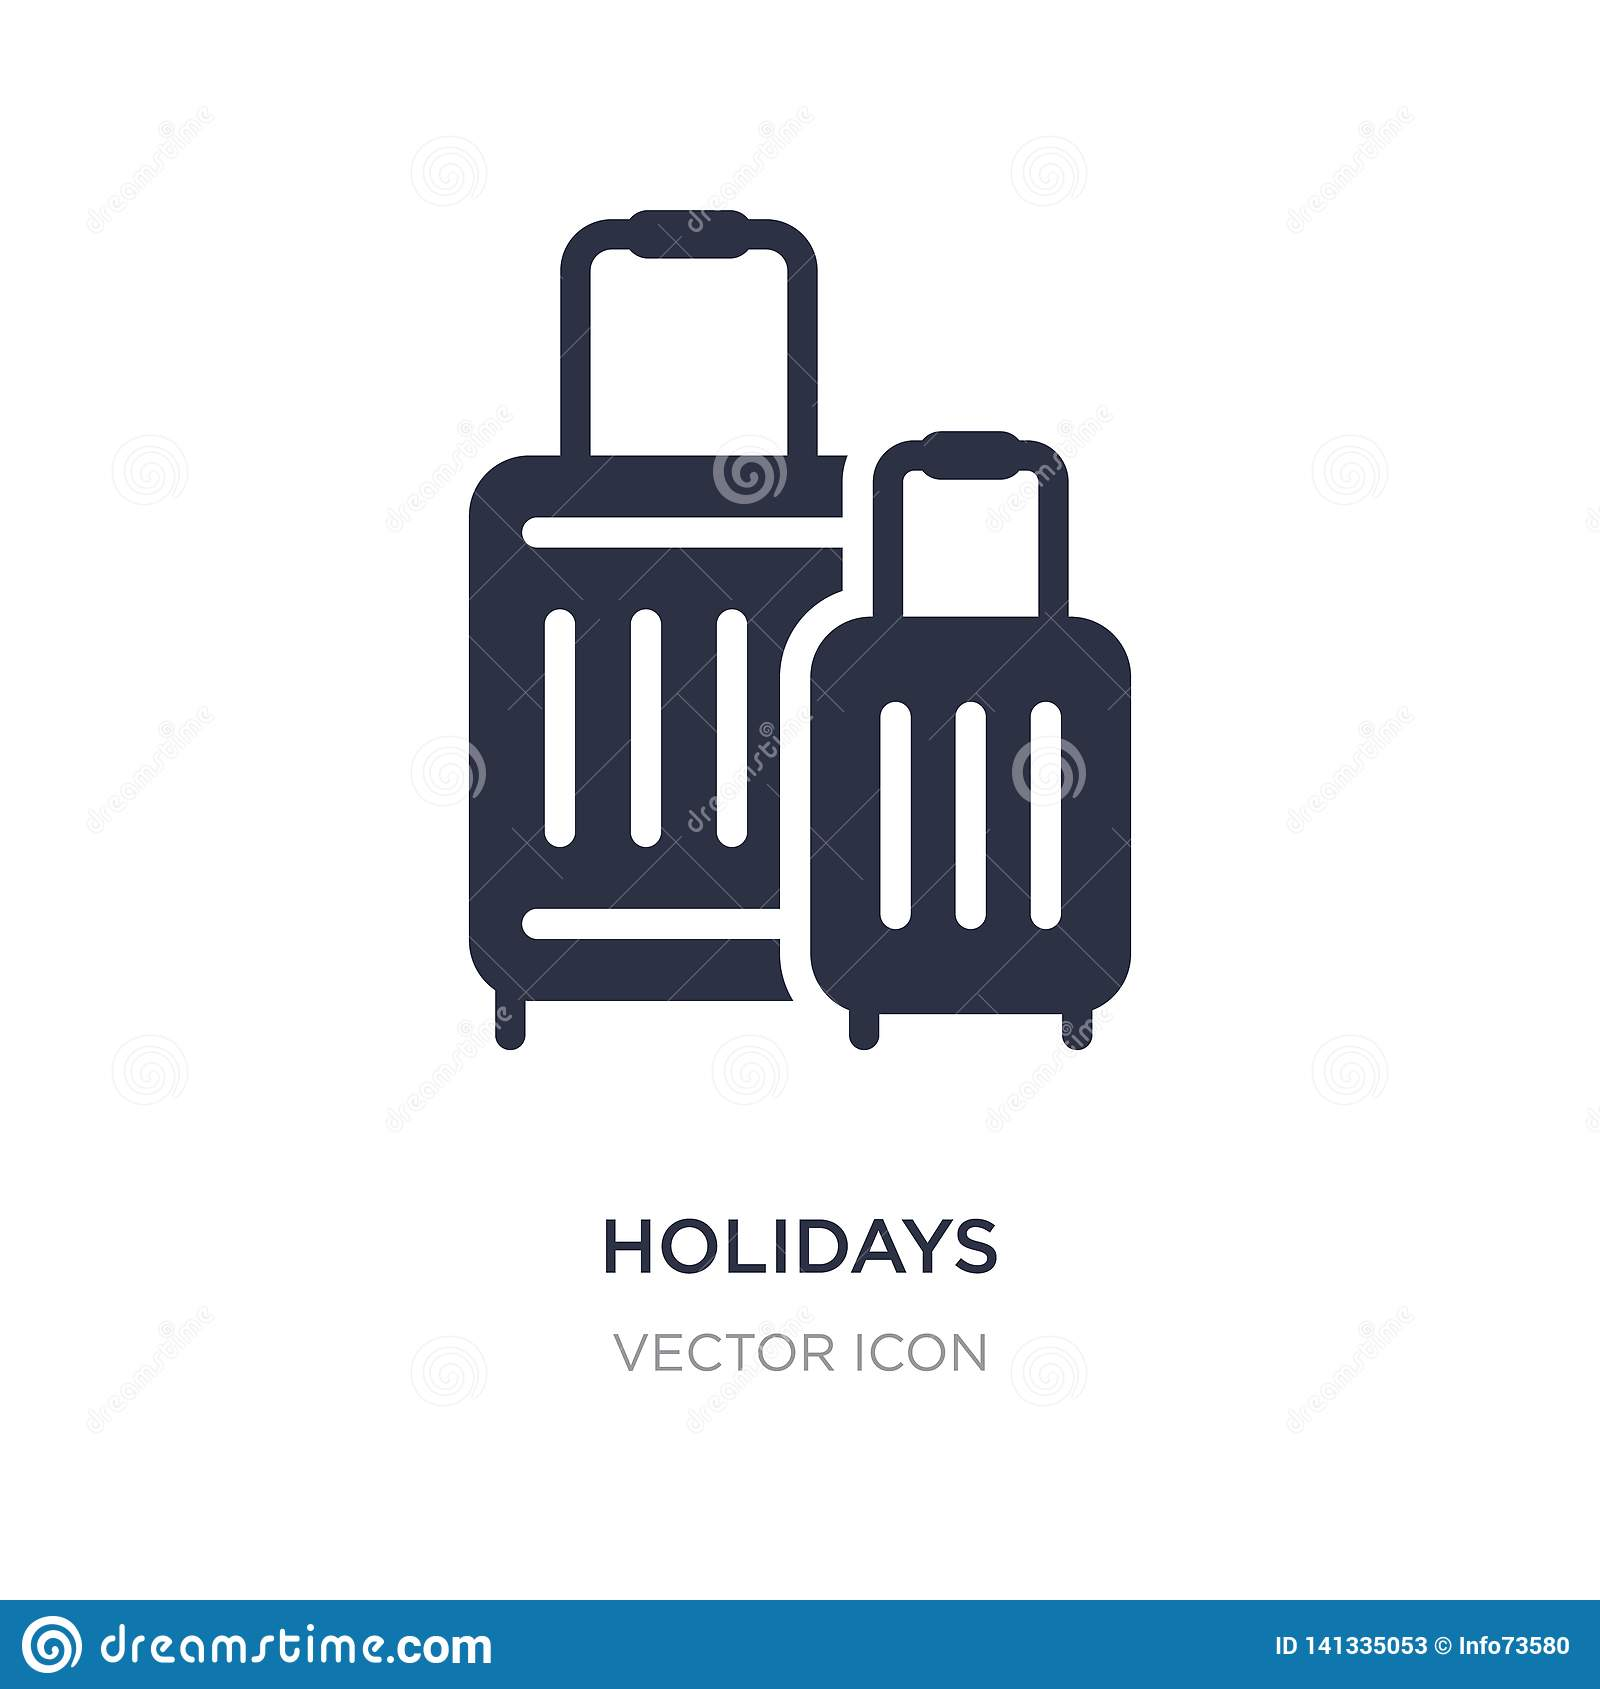 holidays icon on white background. Simple element illustration from Technology concept